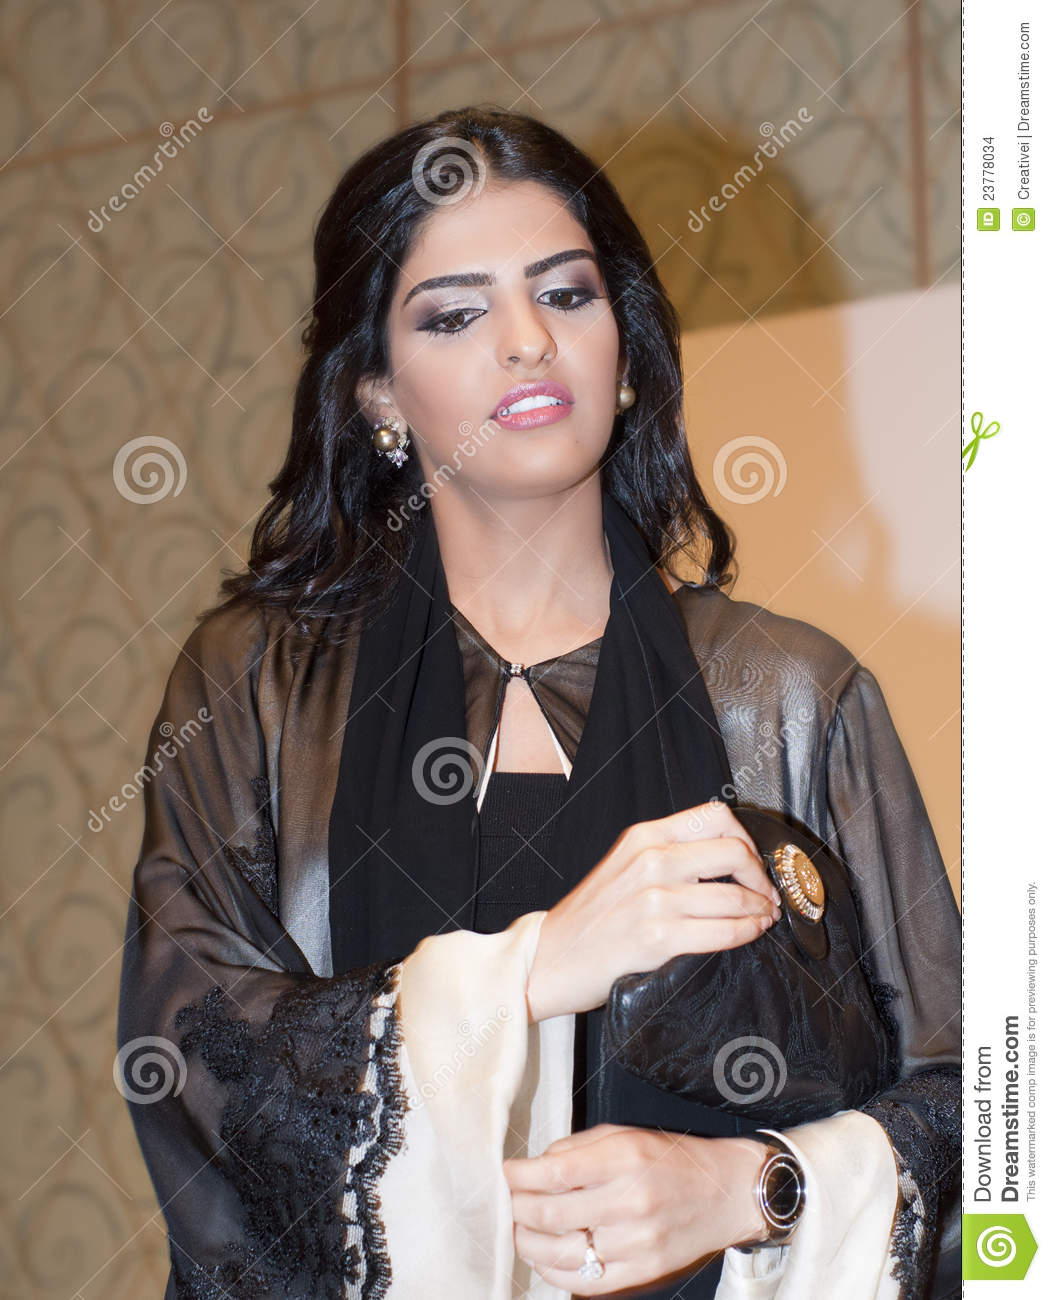 ocean gate muslim girl personals Search the world's information, including webpages, images, videos and more google has many special features to help you find exactly what you're looking for.